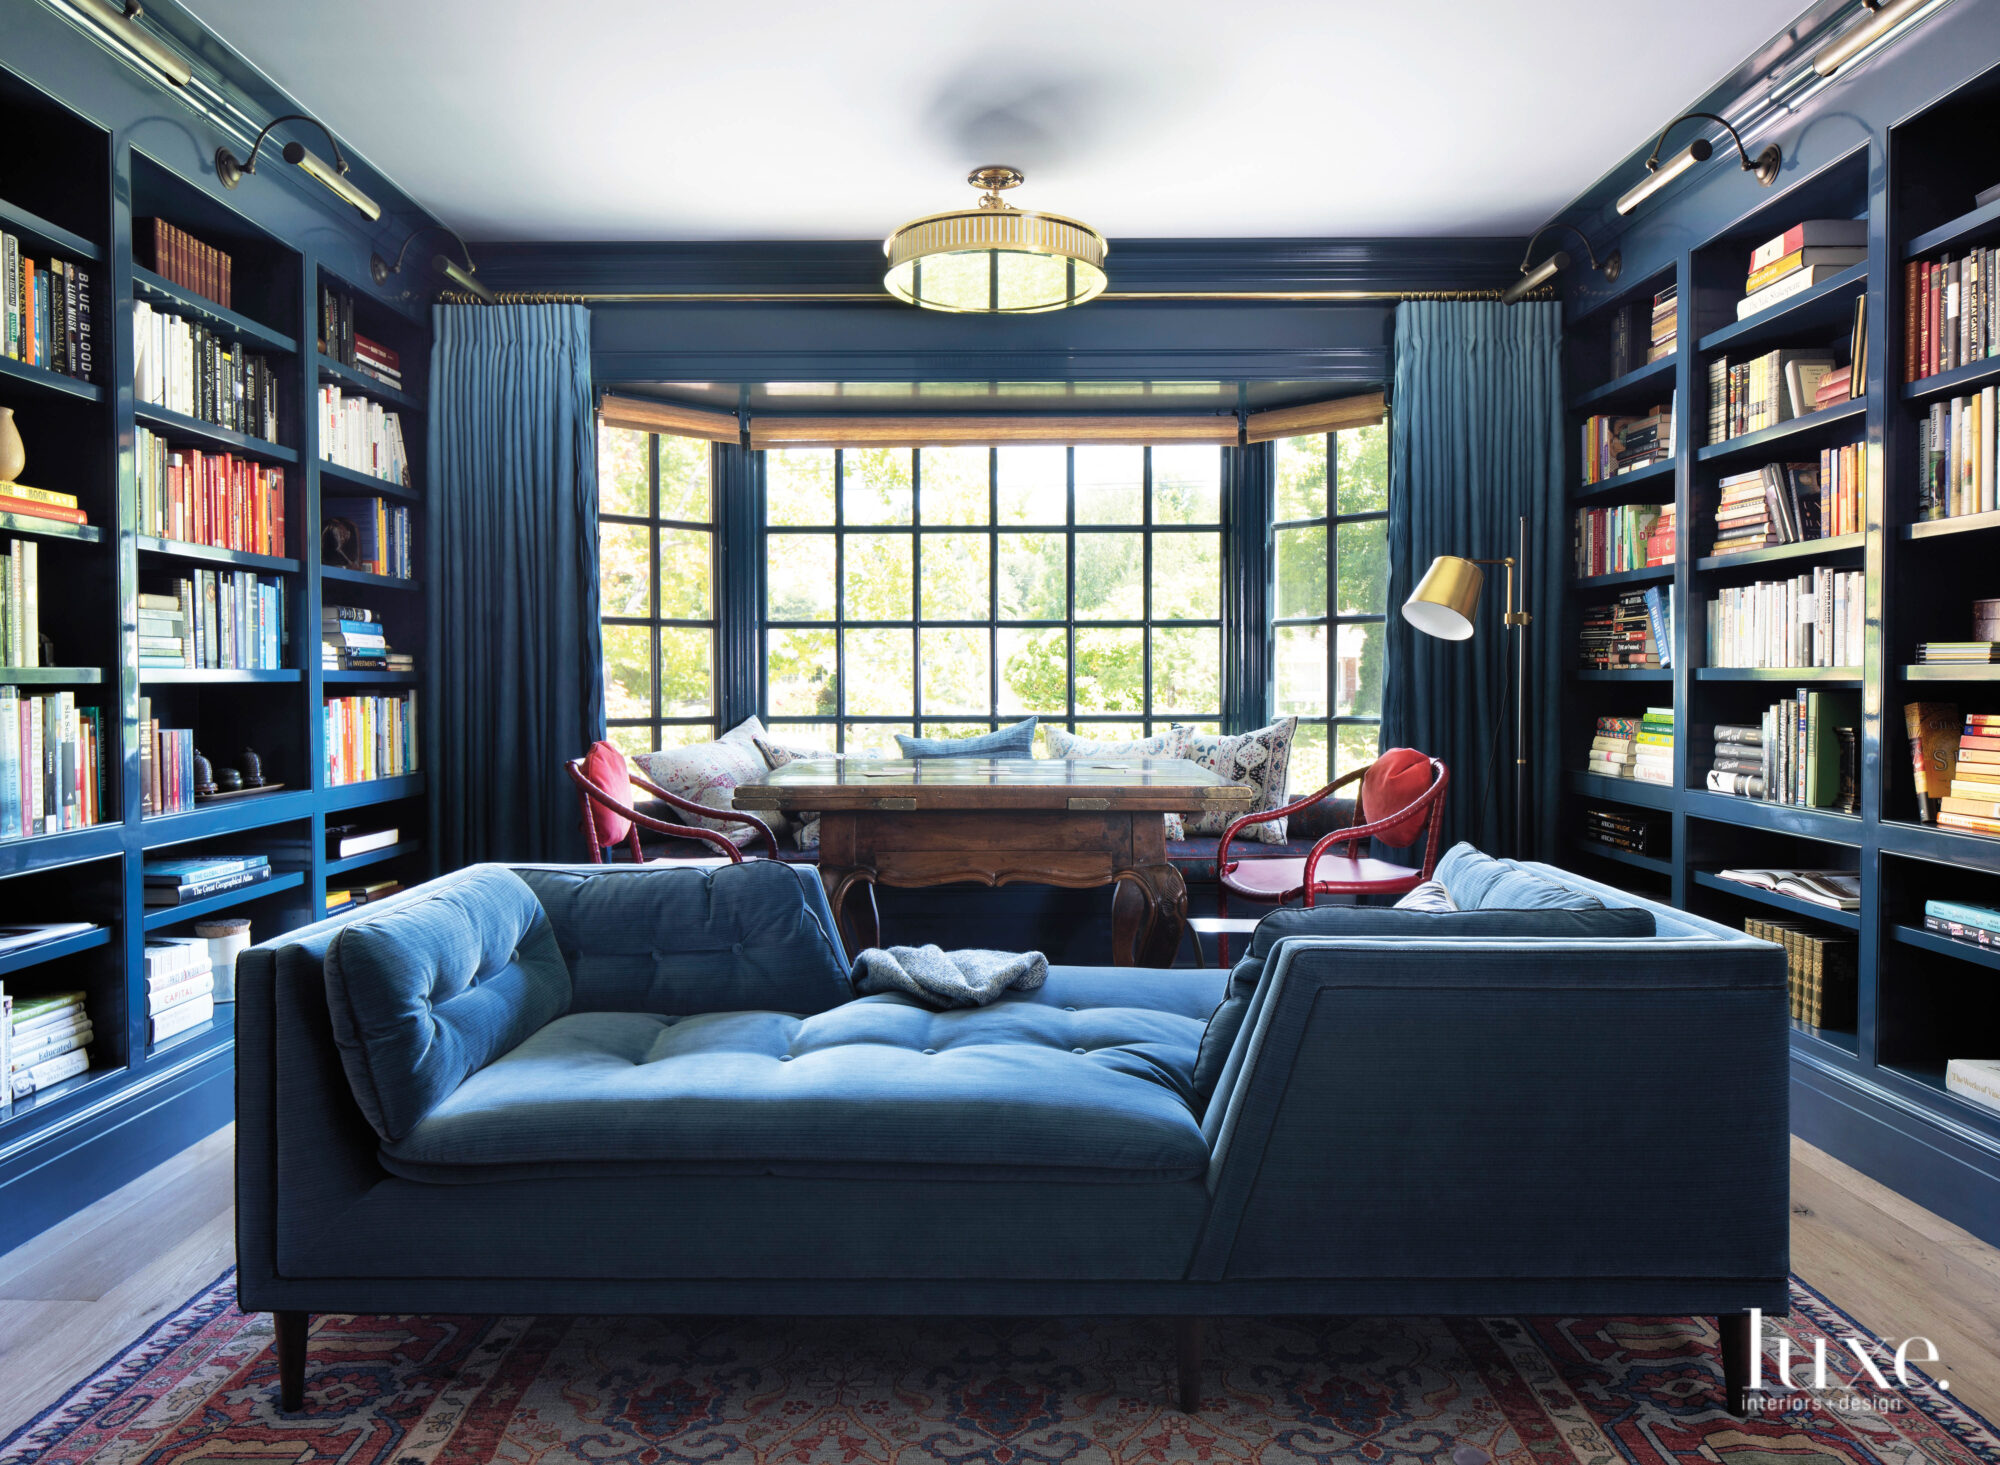 In the library, a two-sided sofa and a game table make the dark blue room multifunctional.